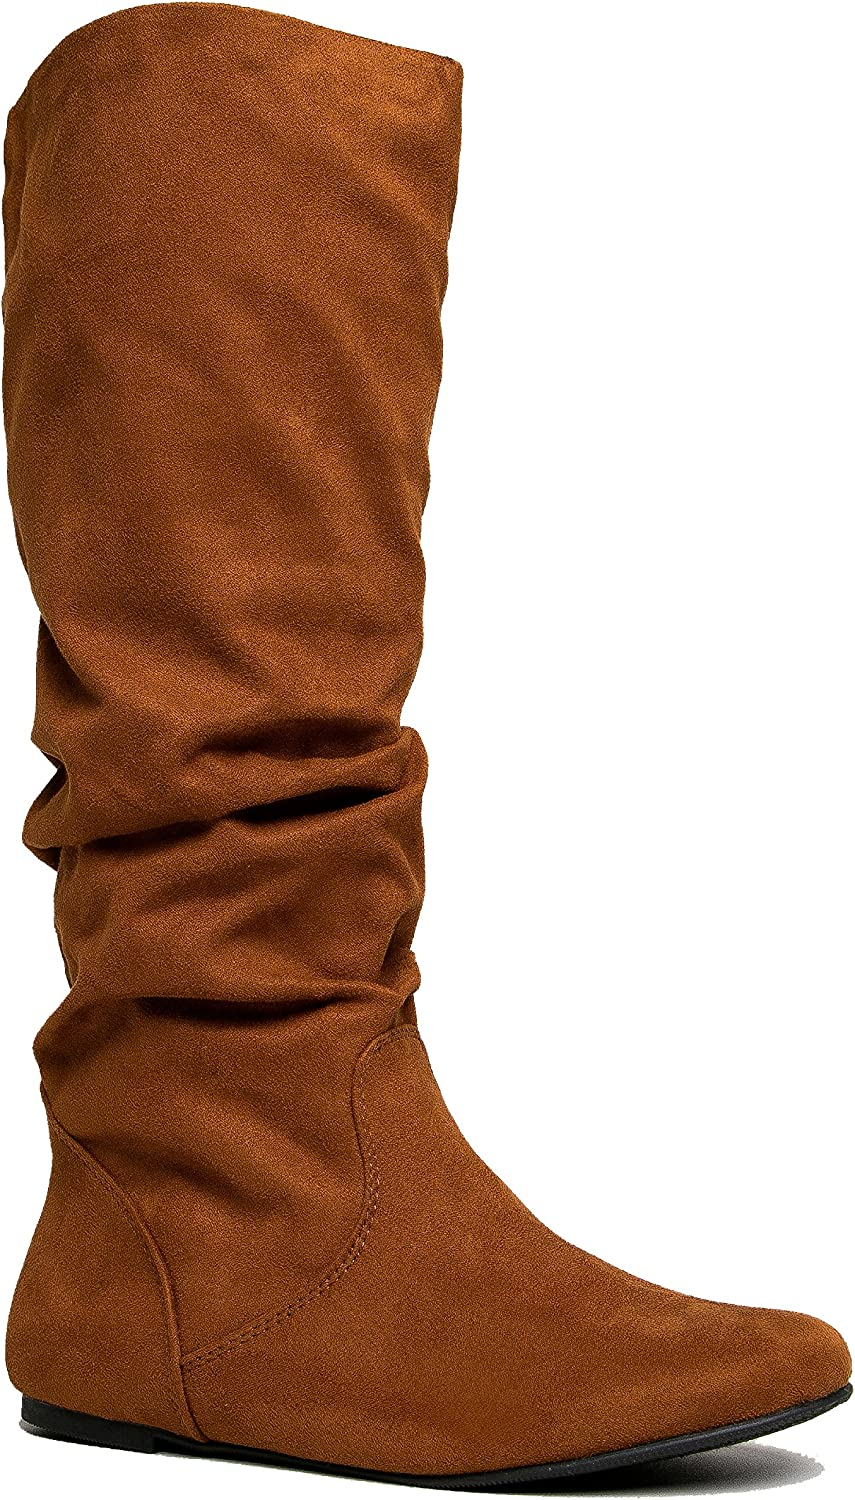 Womens Flat Riding Boot Casual Everyday Walking Shoe Comfortable Vegan Leather Boot ZooShoo Slouchy Knee High Boot